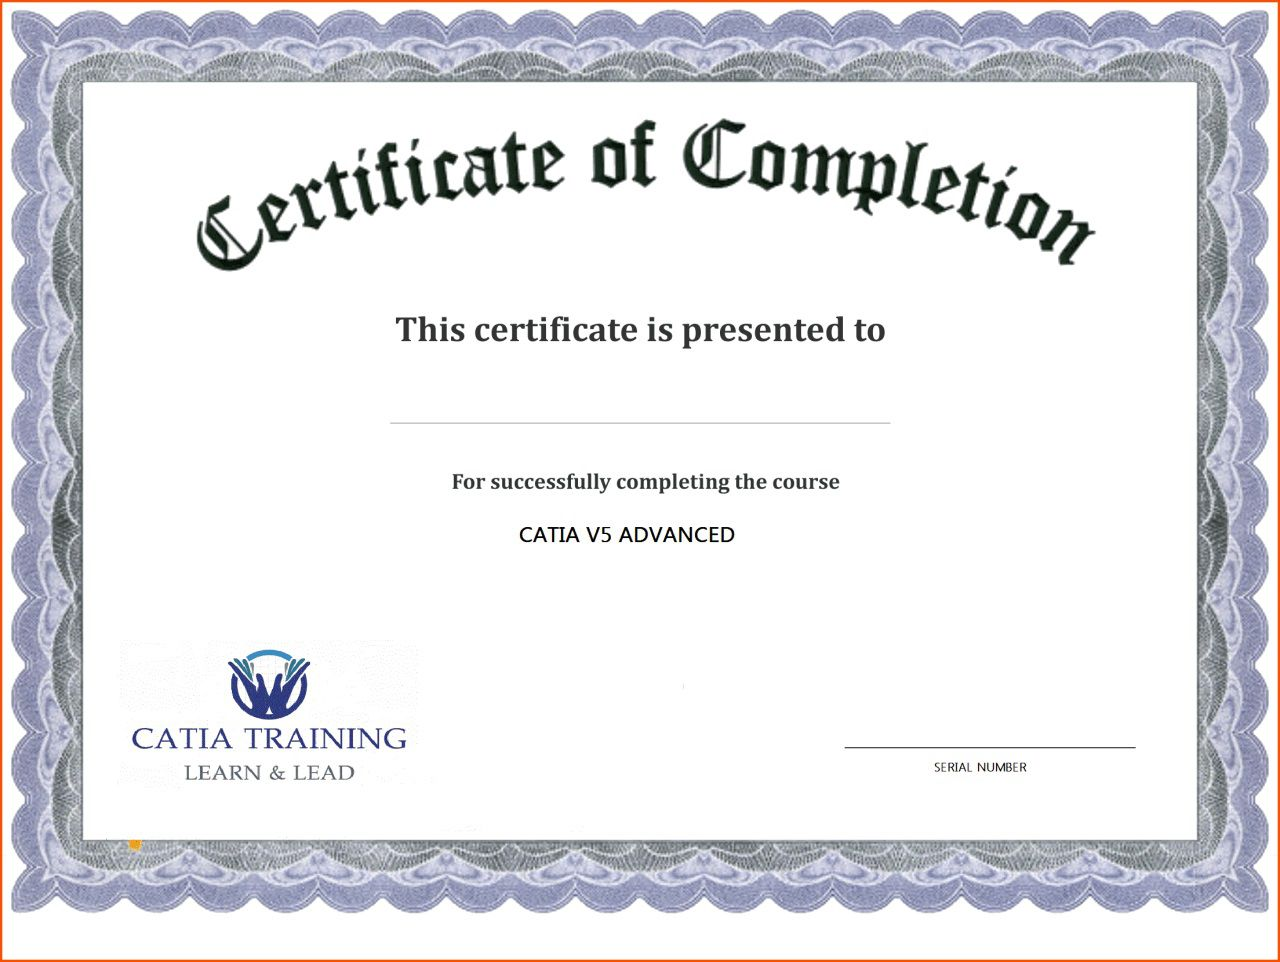 001 Incredible Training Certificate Template Free Idea  Computer Download Golf Course Gift WordFull